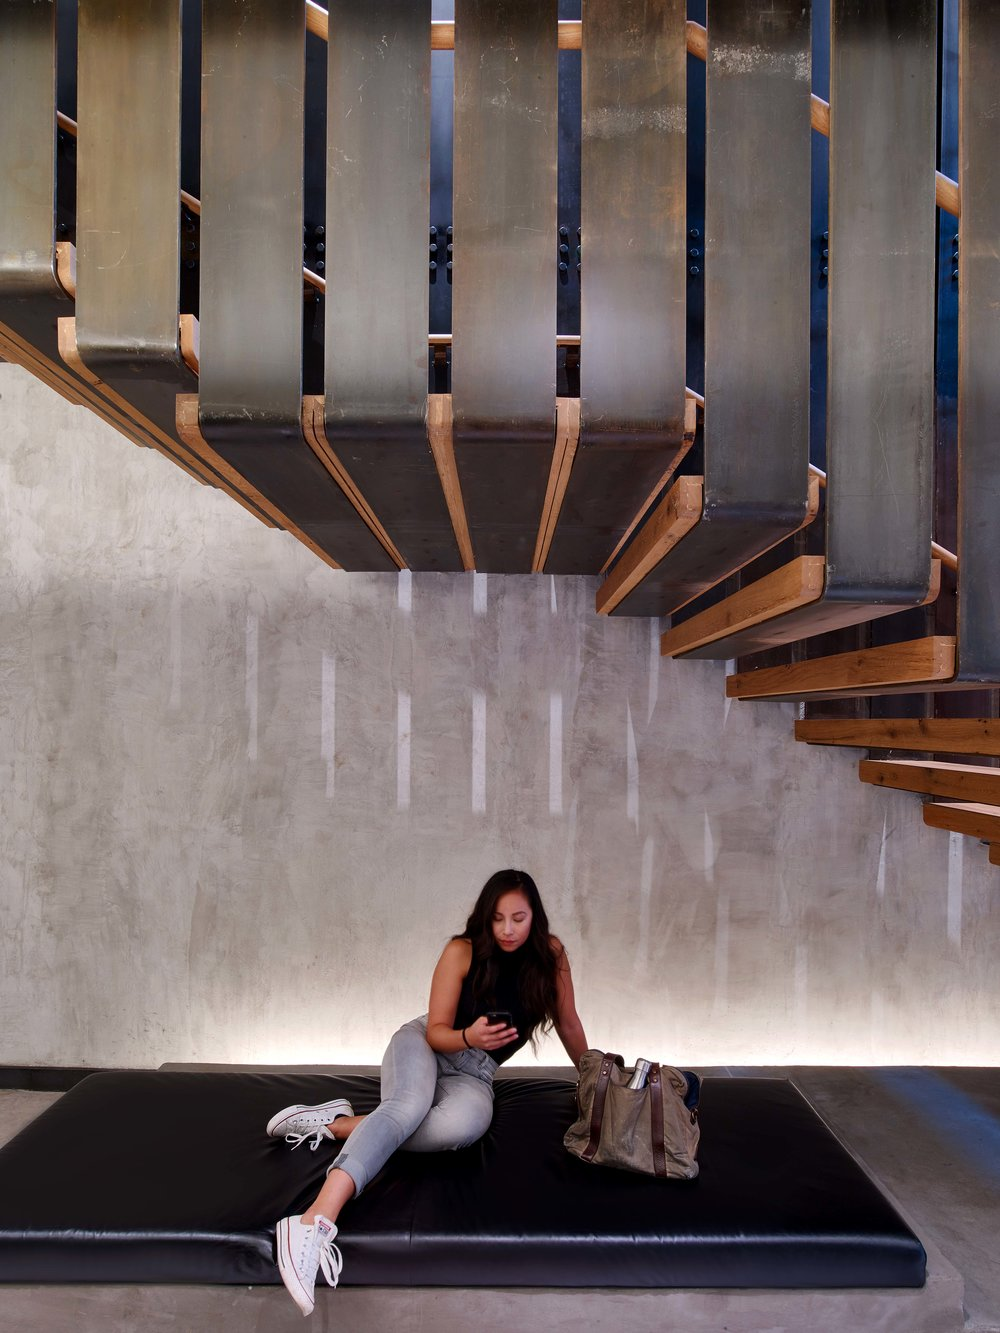 Equinox Dumbo Stairs and Bench with Woman